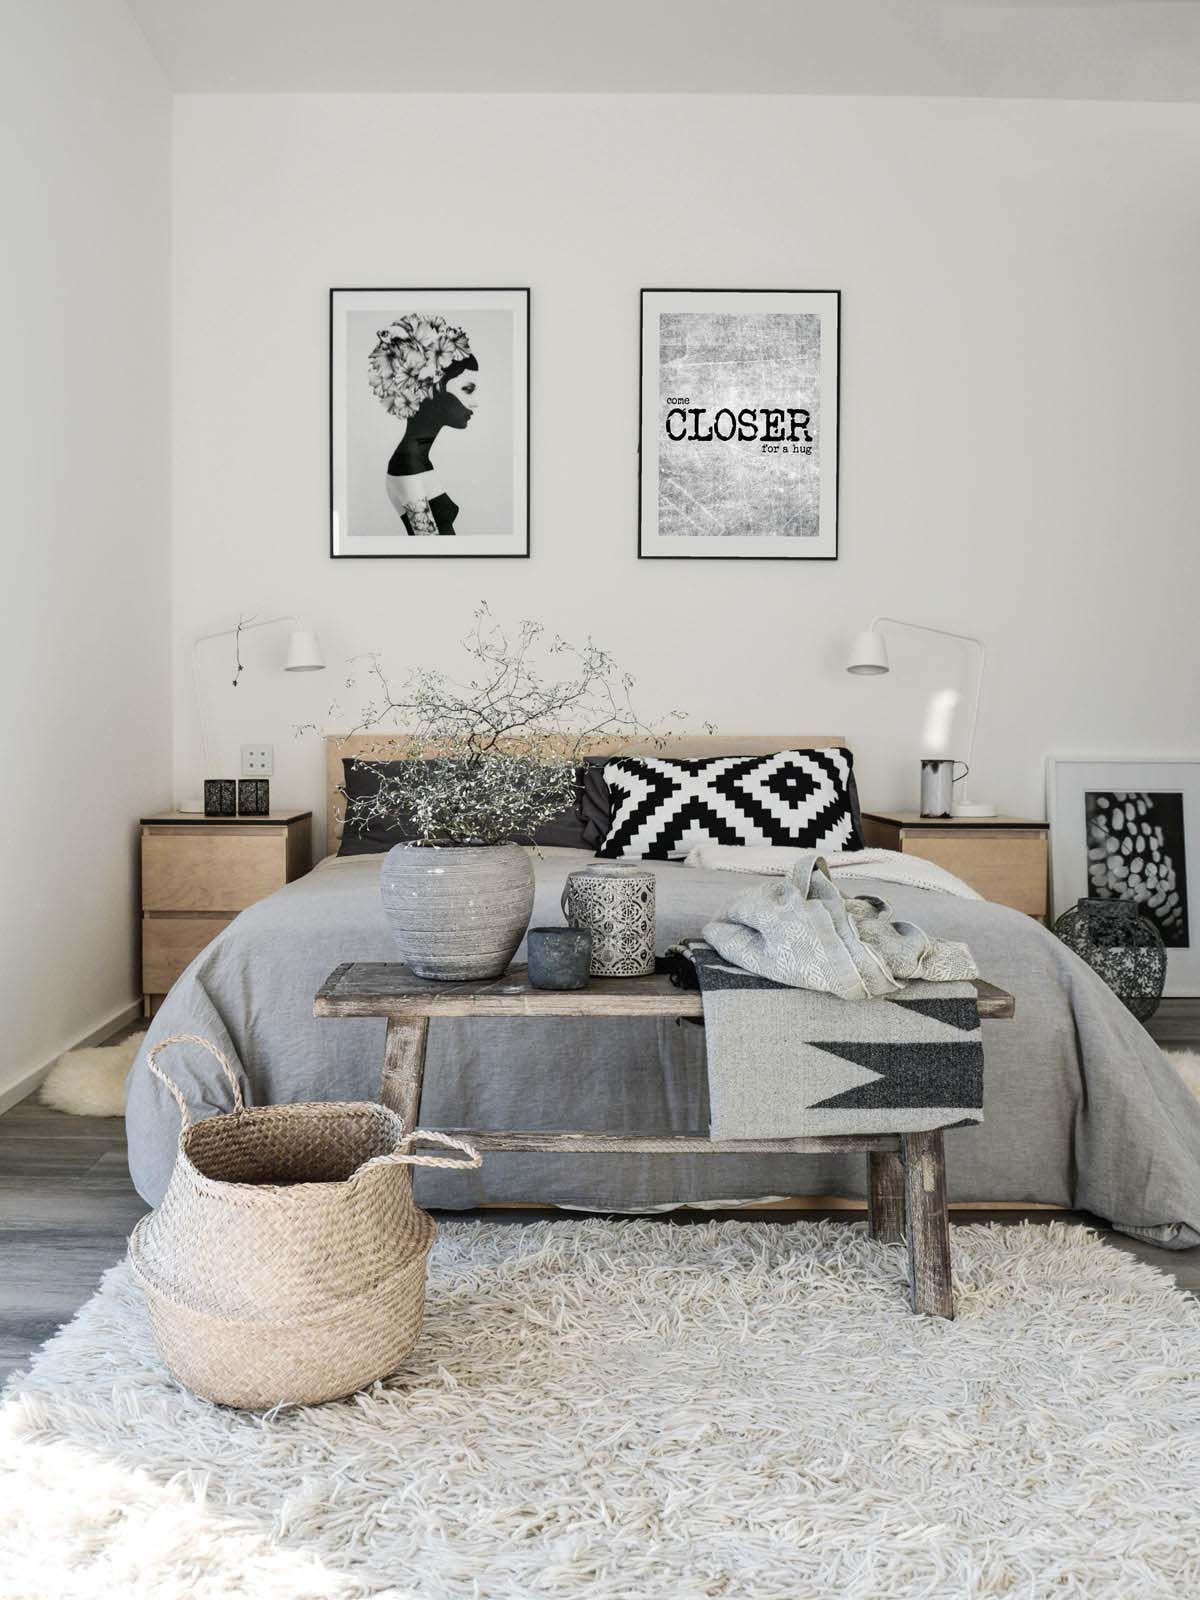 45 scandinavian bedroom ideas that are modern and stylish for Innengestaltung wohnzimmer